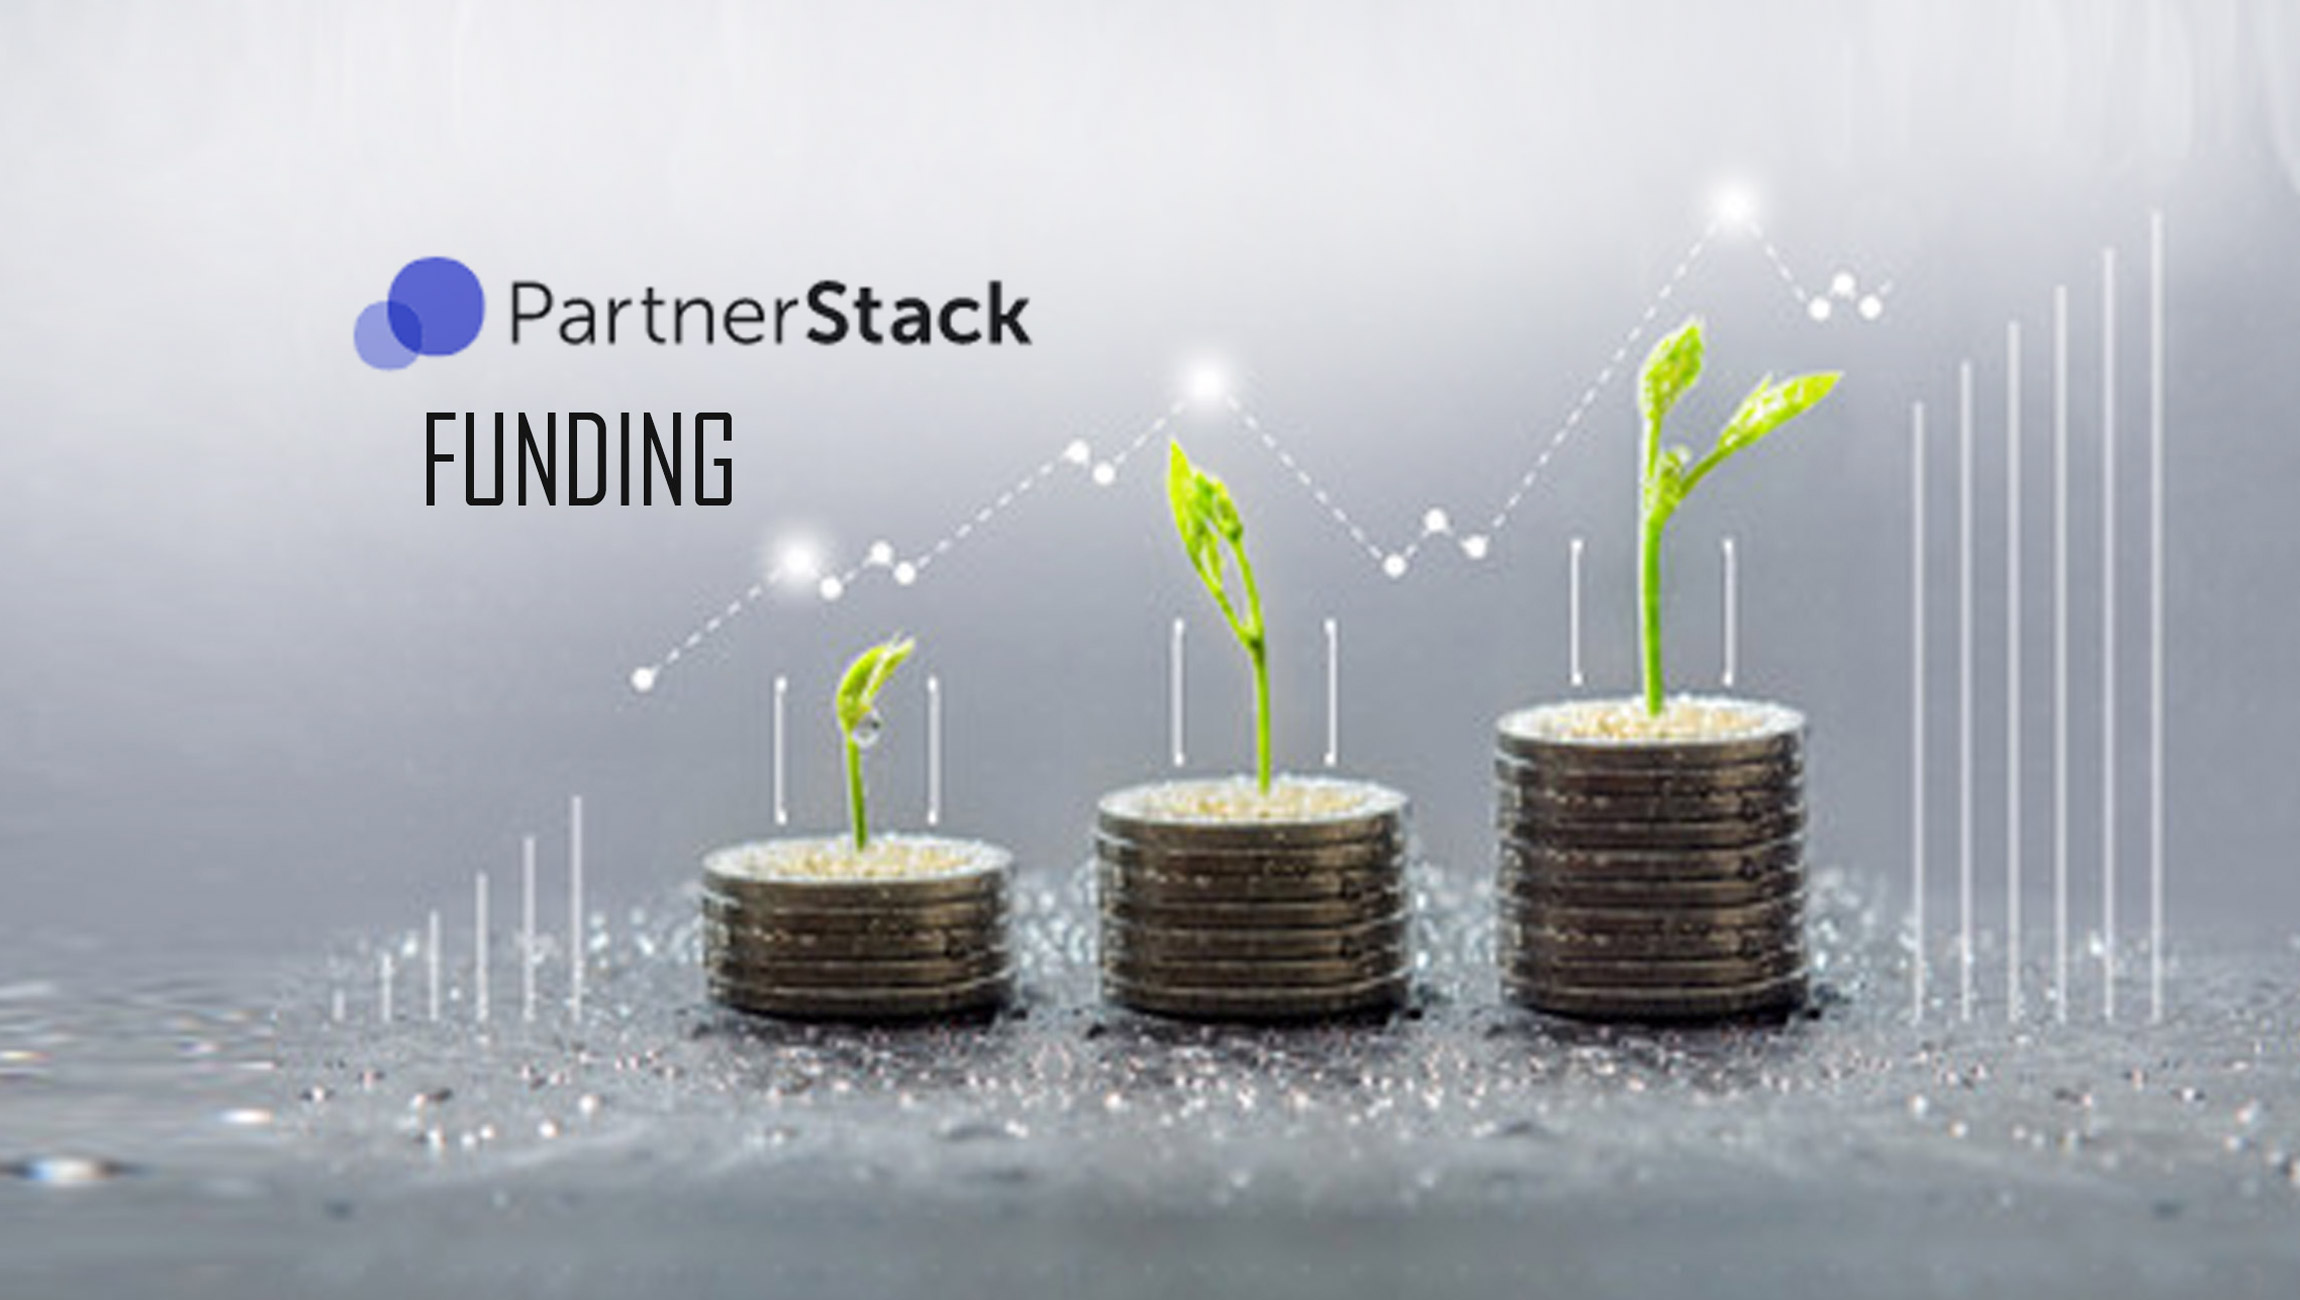 PartnerStack, the Leading Partnerships Platform for SaaS, Closes $29 Million Series B Funding Round